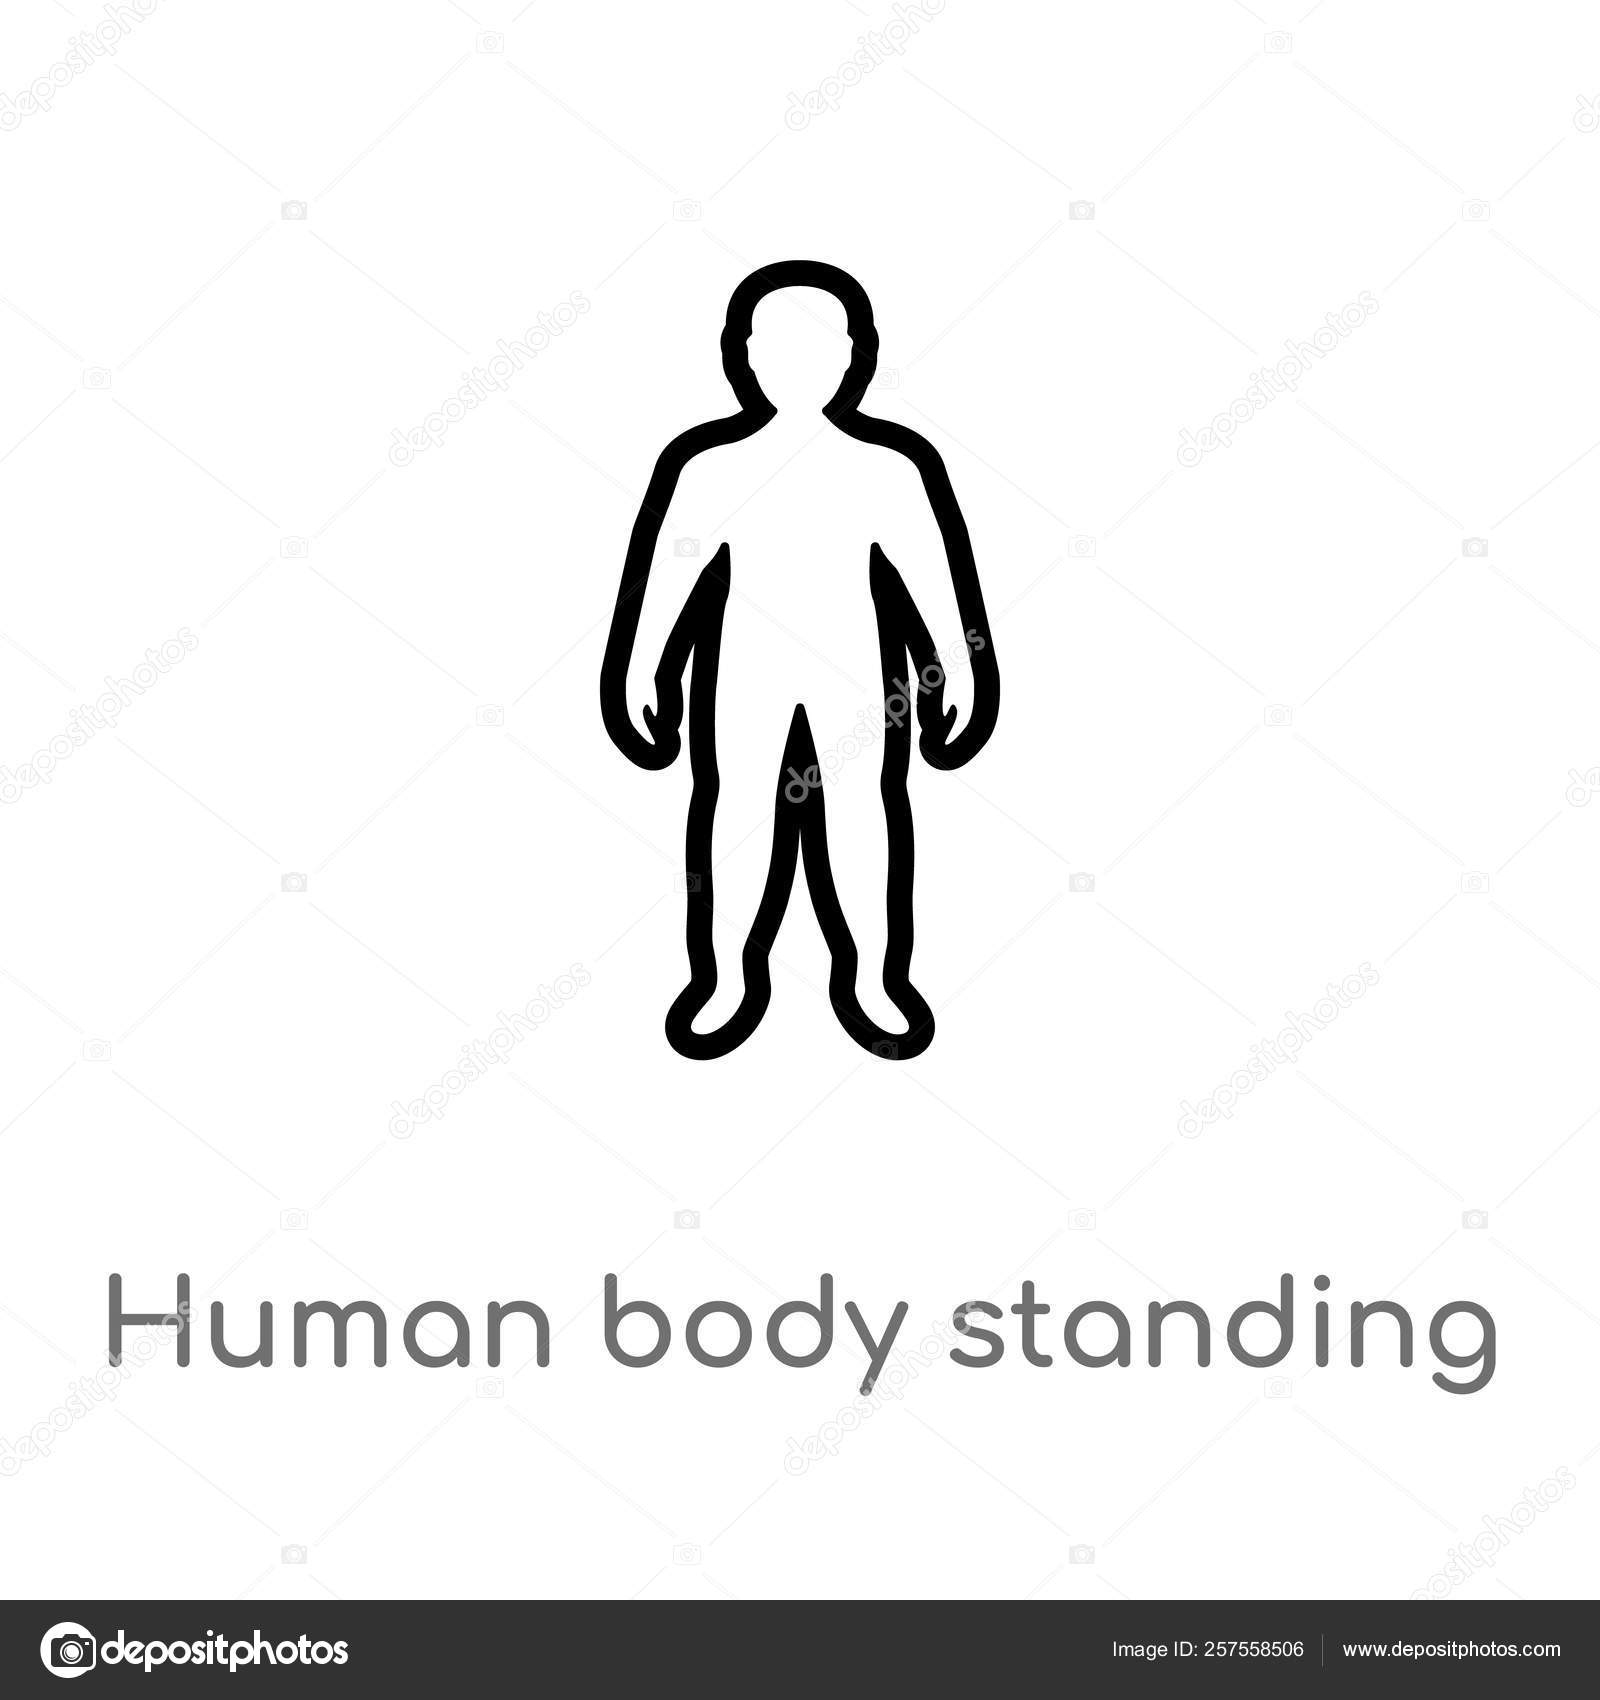 vector human body black and white outline human body standing black vector icon isolated black simple stock vector c zaurrahimov 257558506 vector human body black and white outline human body standing black vector icon isolated black simple stock vector c zaurrahimov 257558506